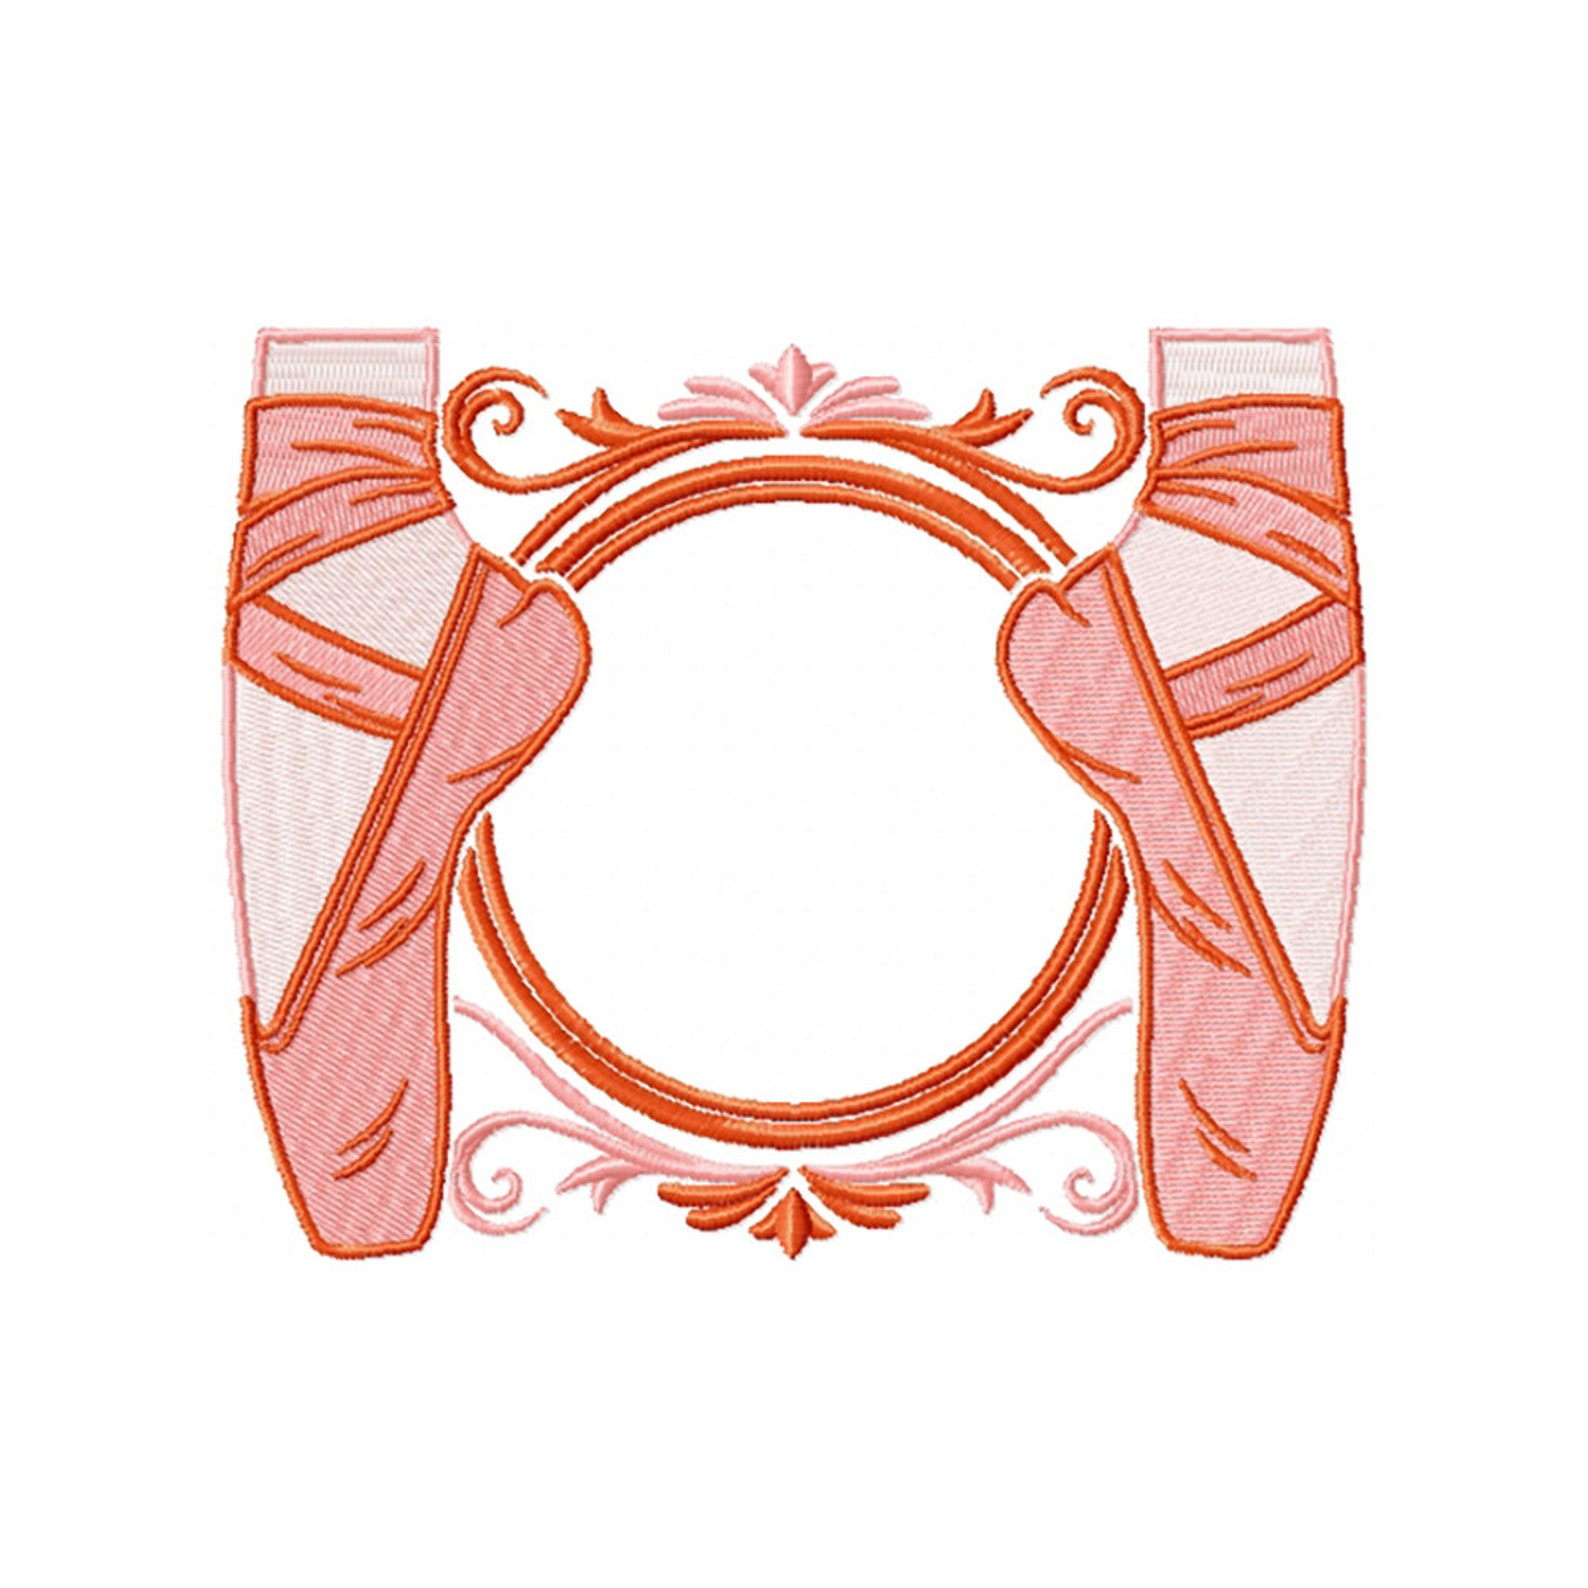 machine embroidery design - ballet shoes monogram #01